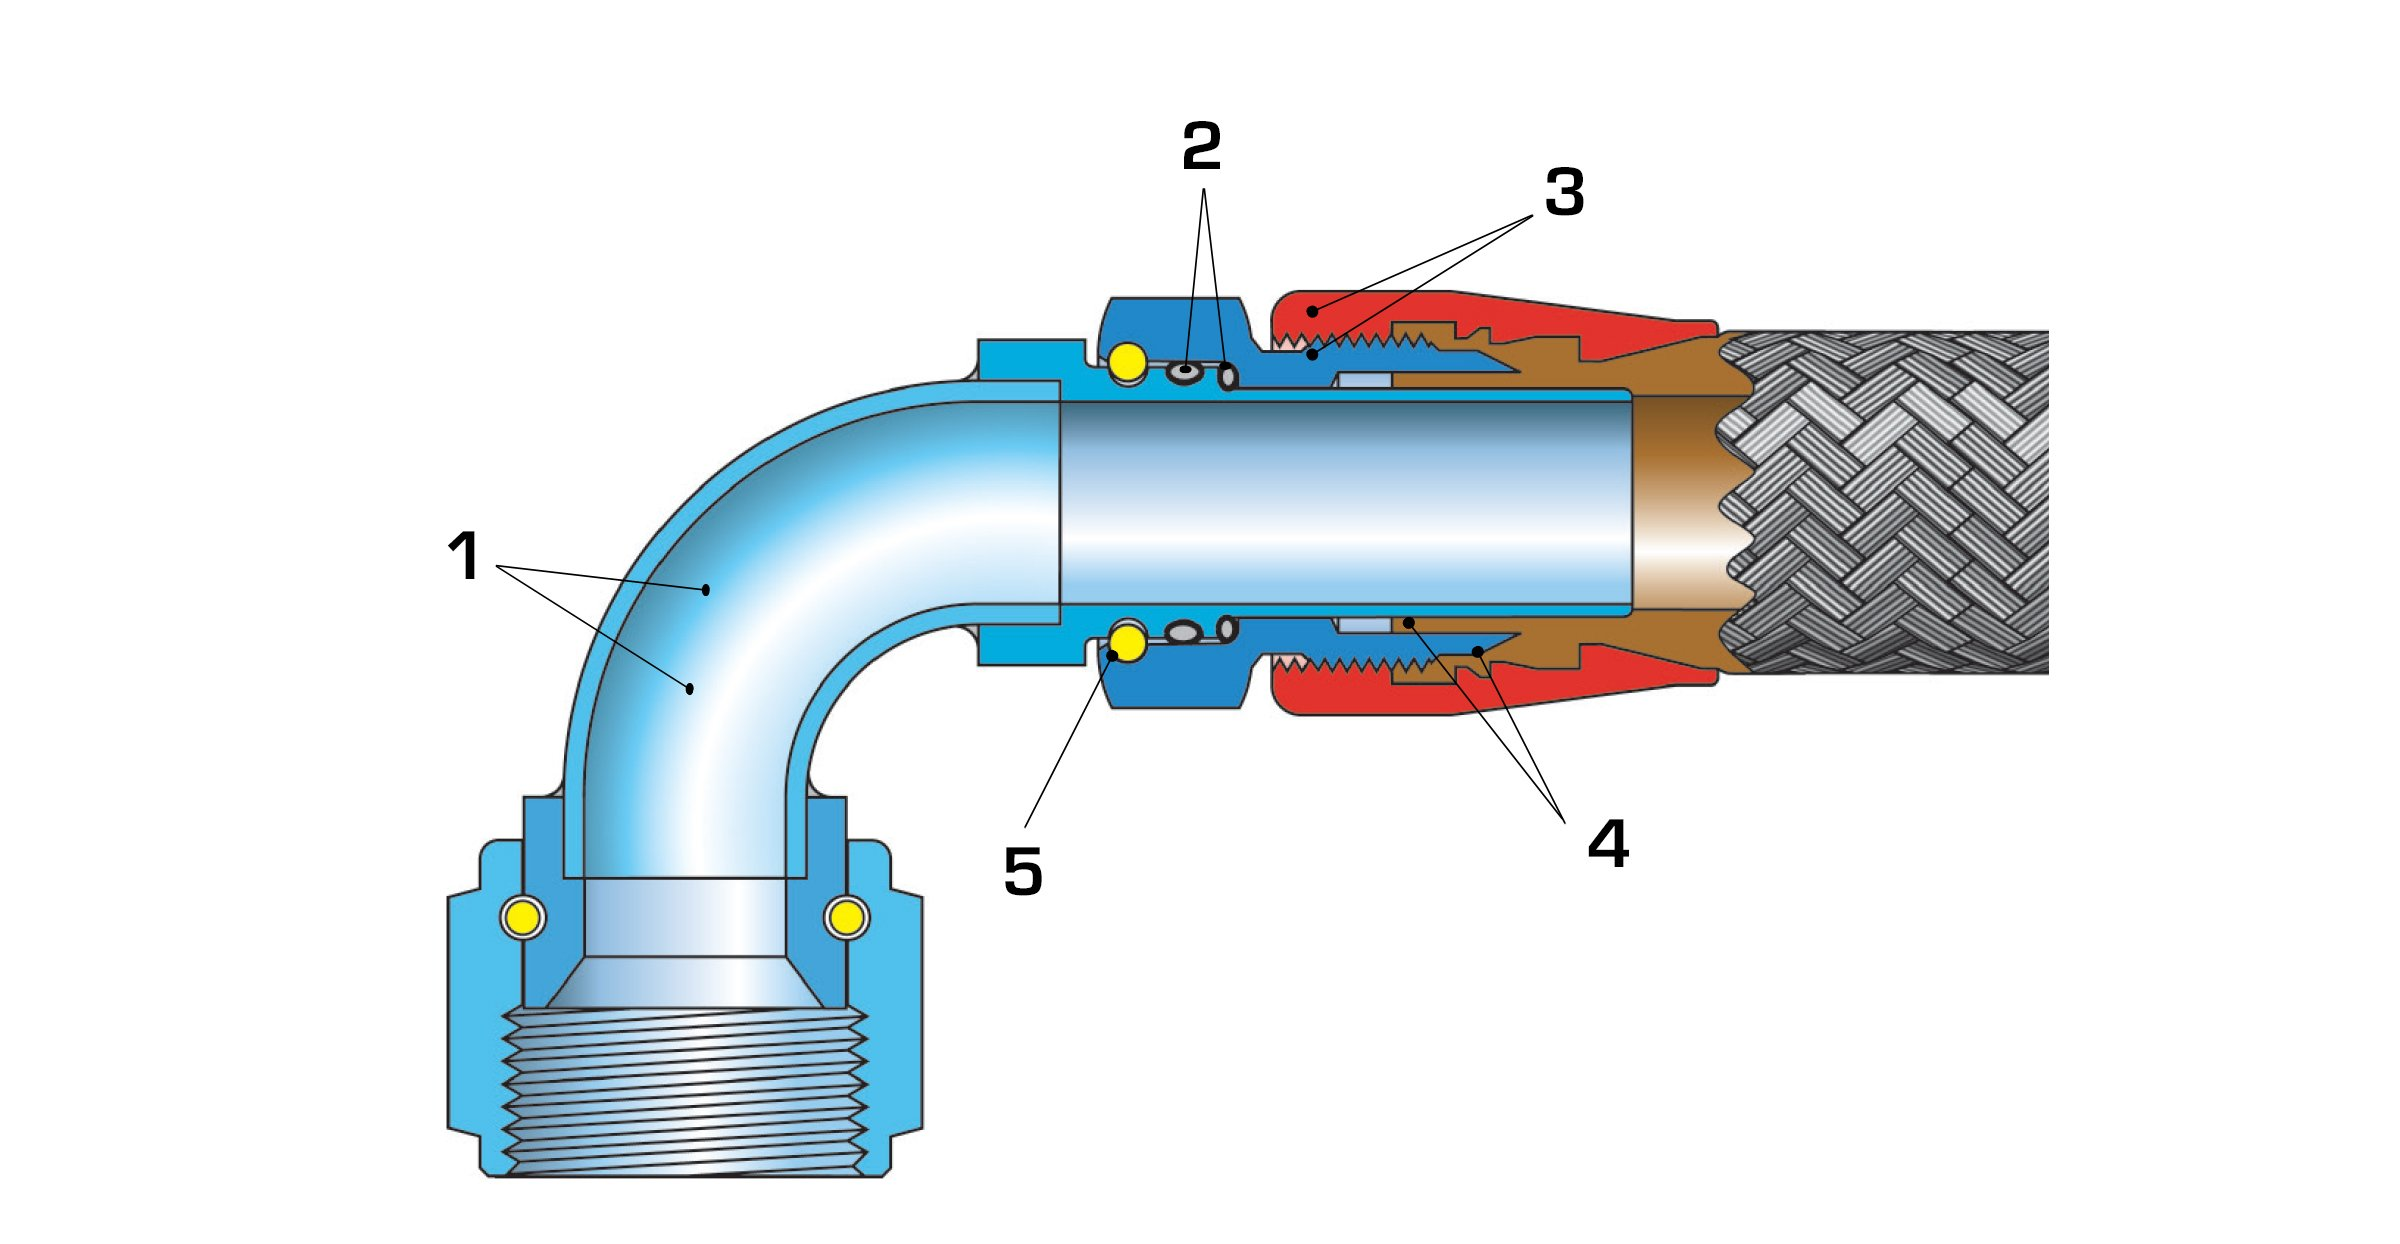 Swivel Seal Diagram Image